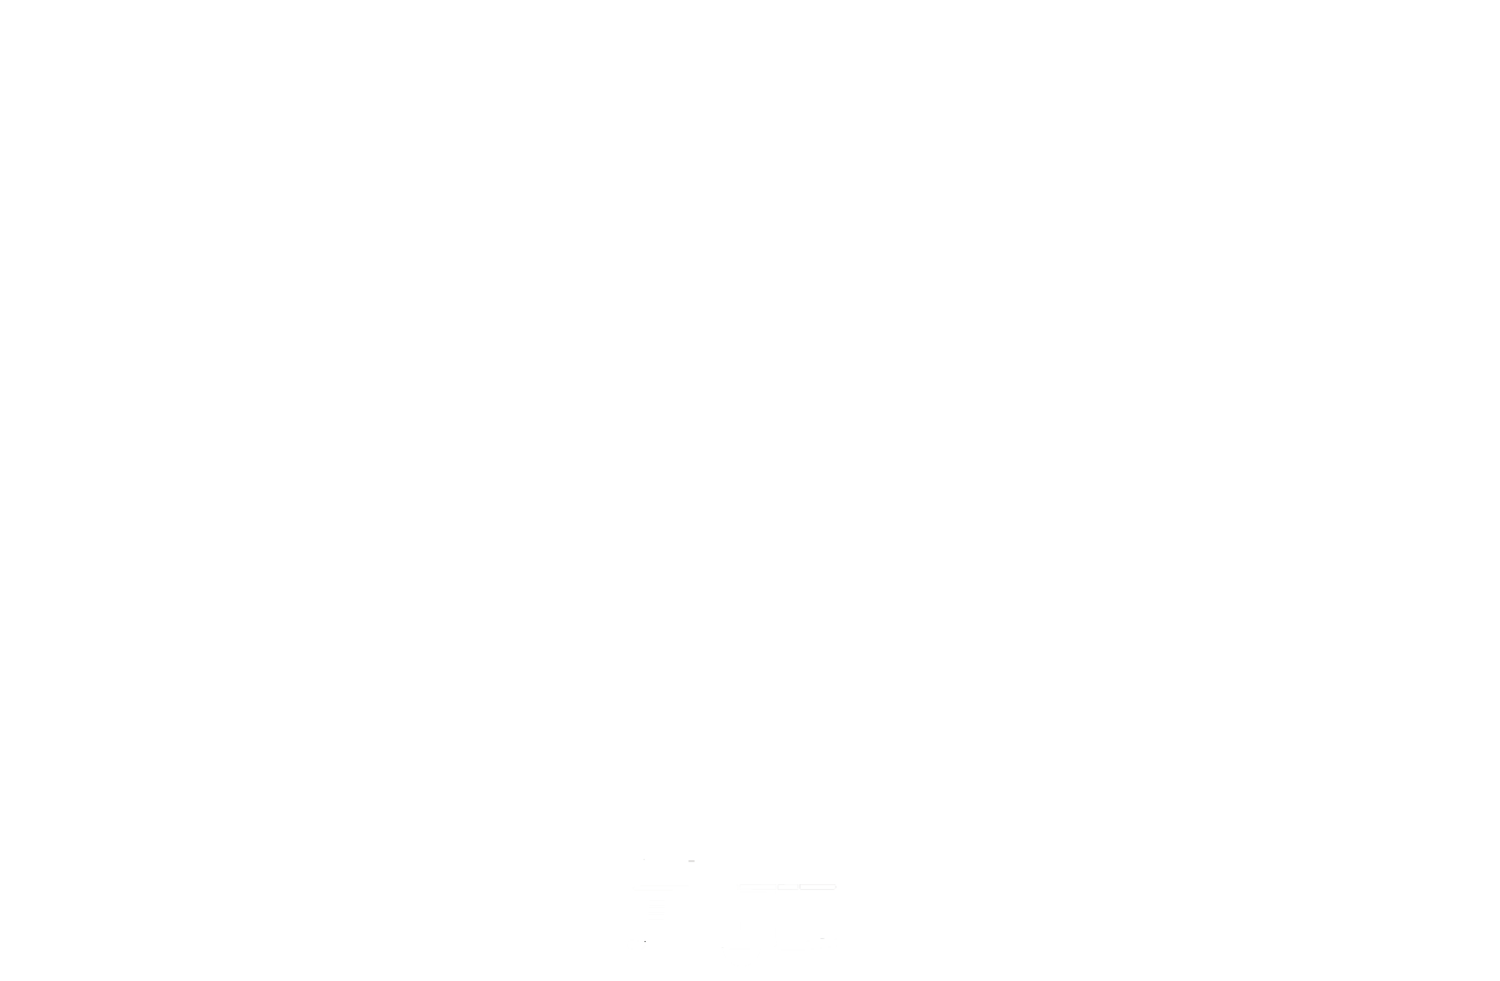 Hitch the Photo Trailer